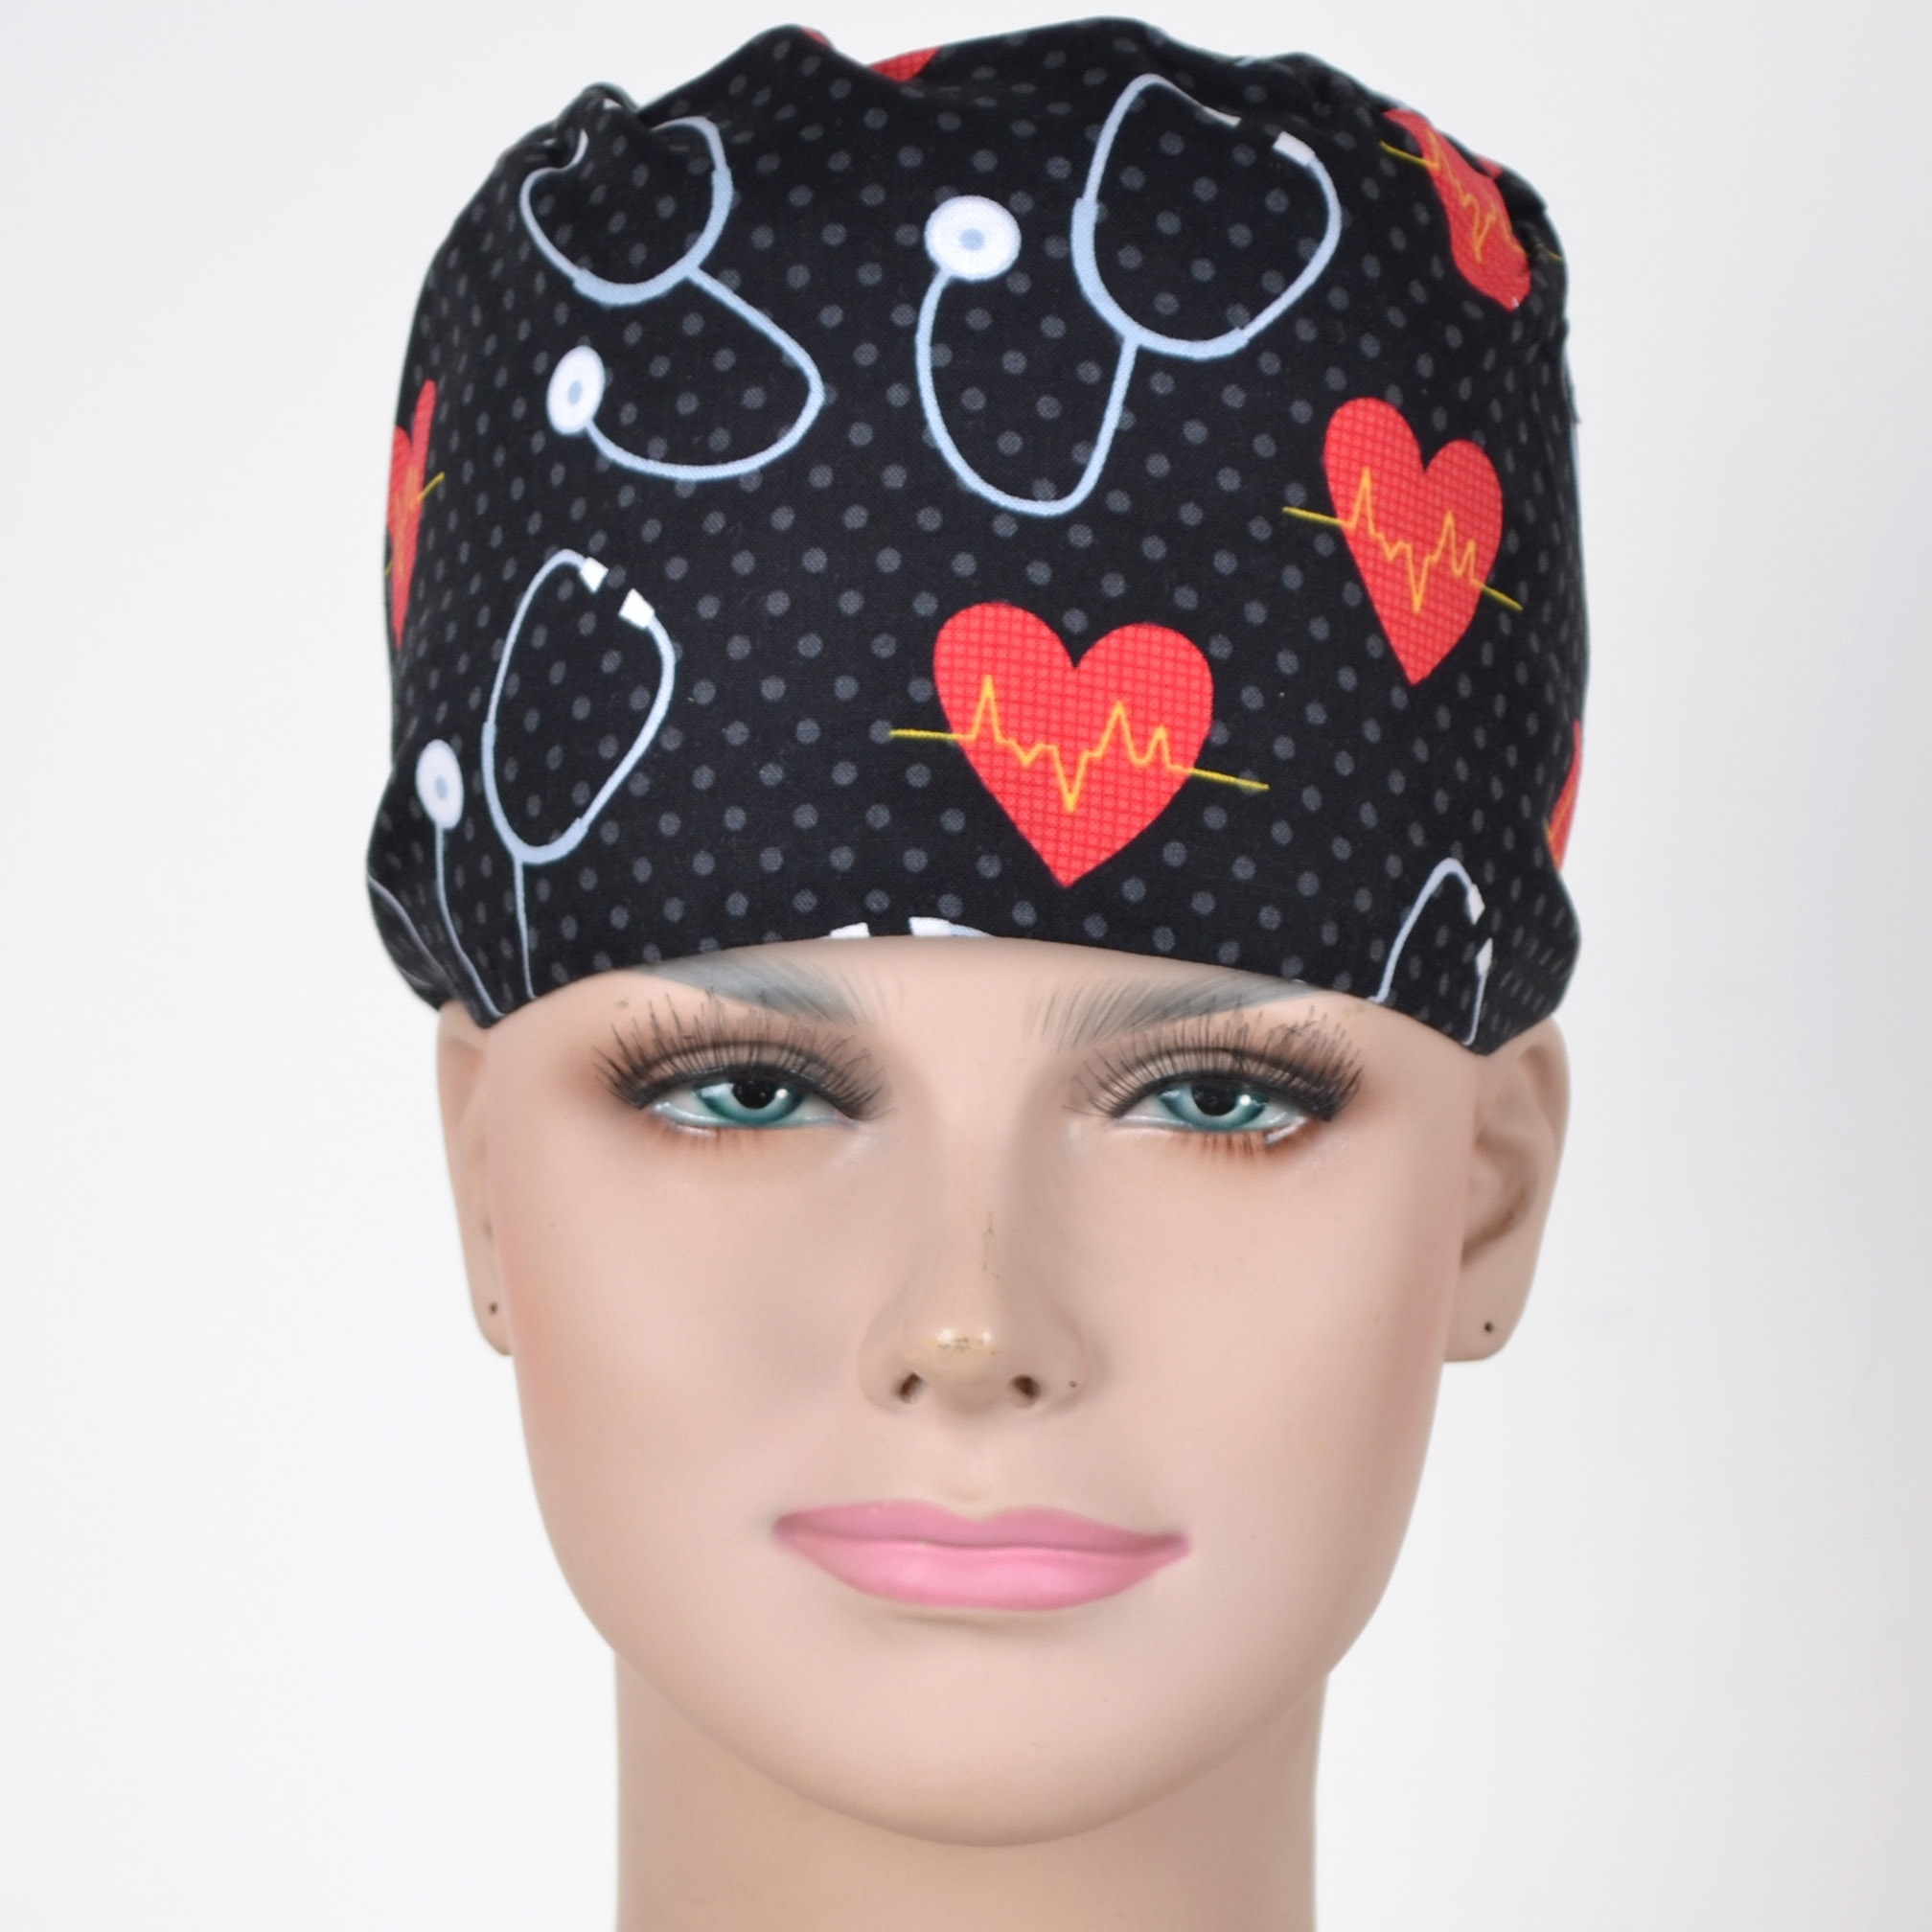 Hennar Unisex Scrub Caps For Men And Women,medical Caps In Black With Hearts And Stethoscope Prints,3 Sizes Surgical Caps